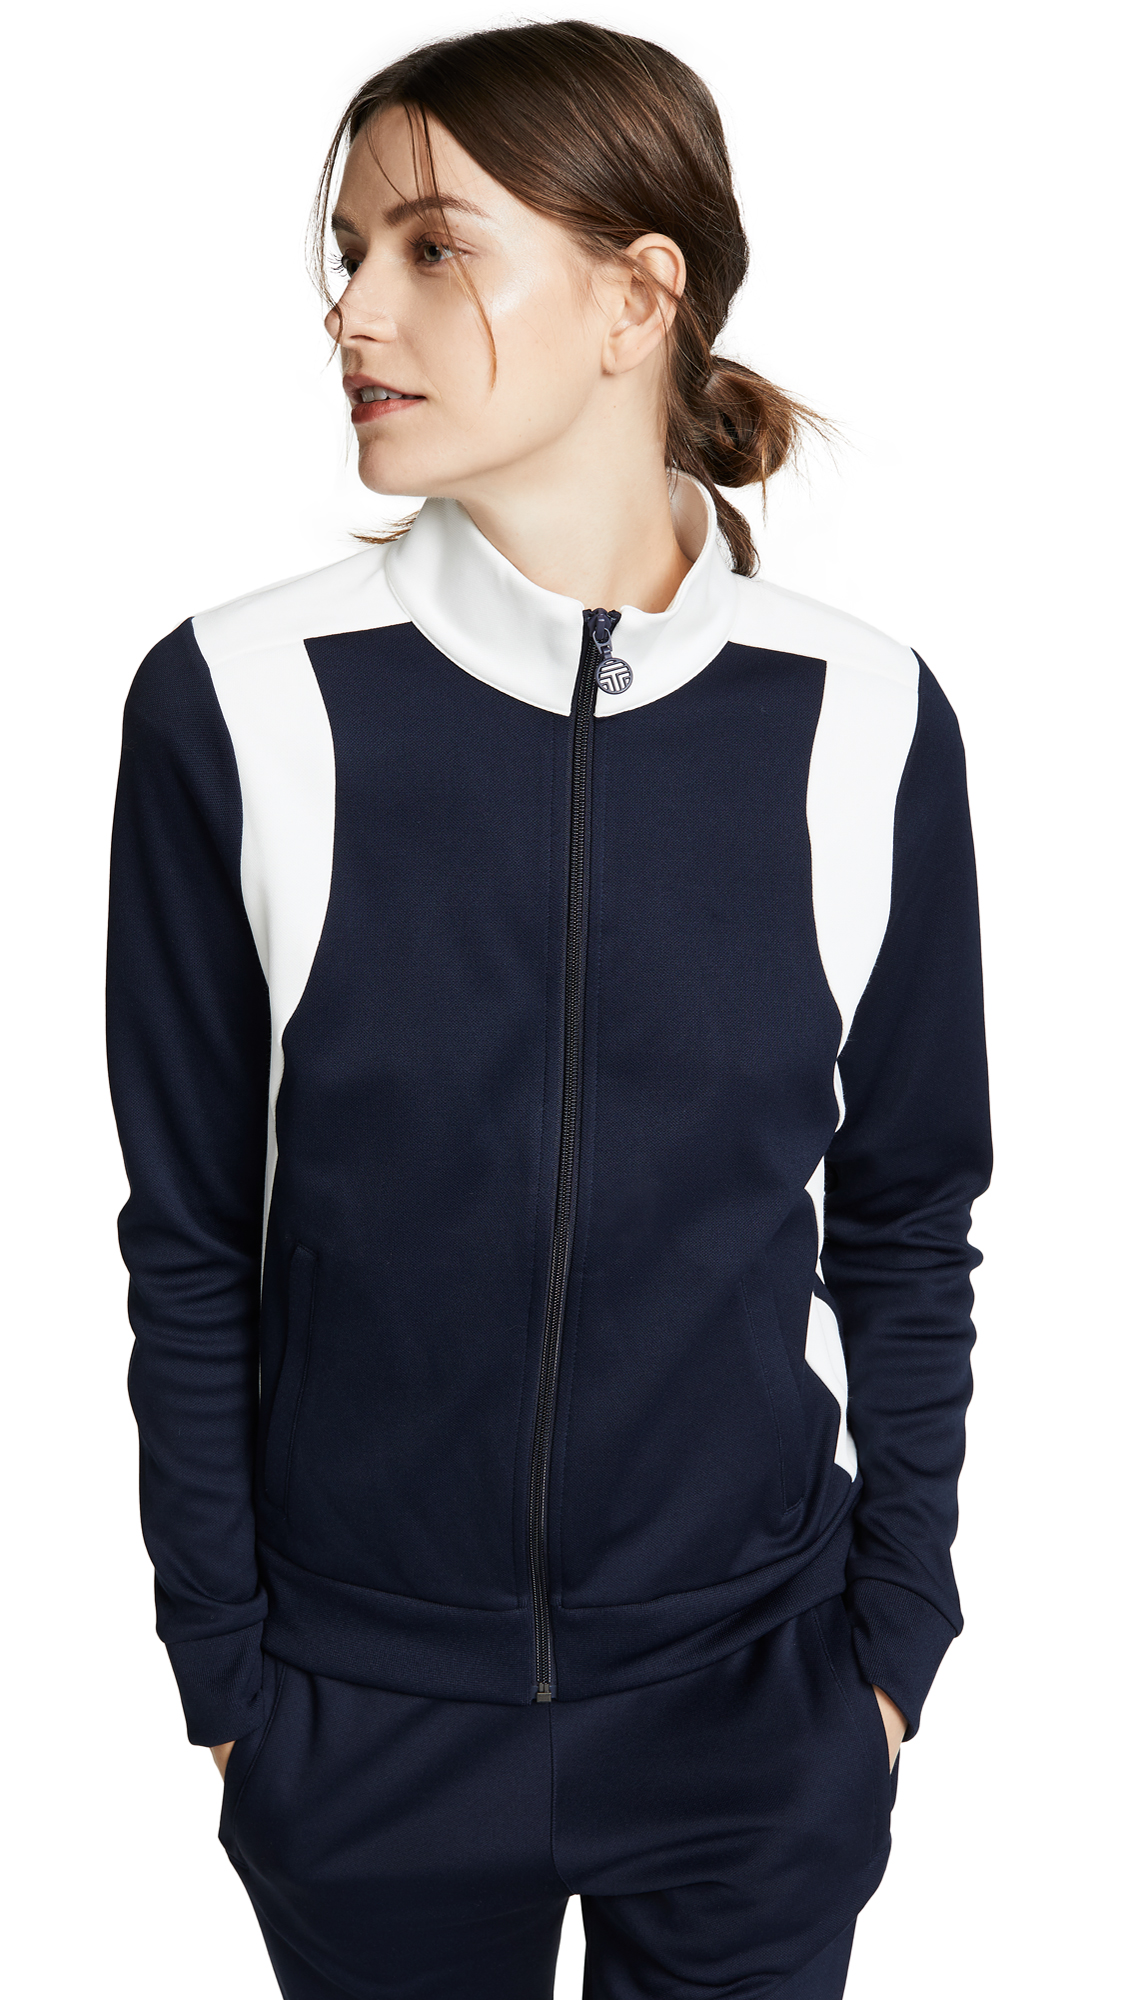 Tory Sport Colorblock Track Jacket - Tory Navy/Snow White